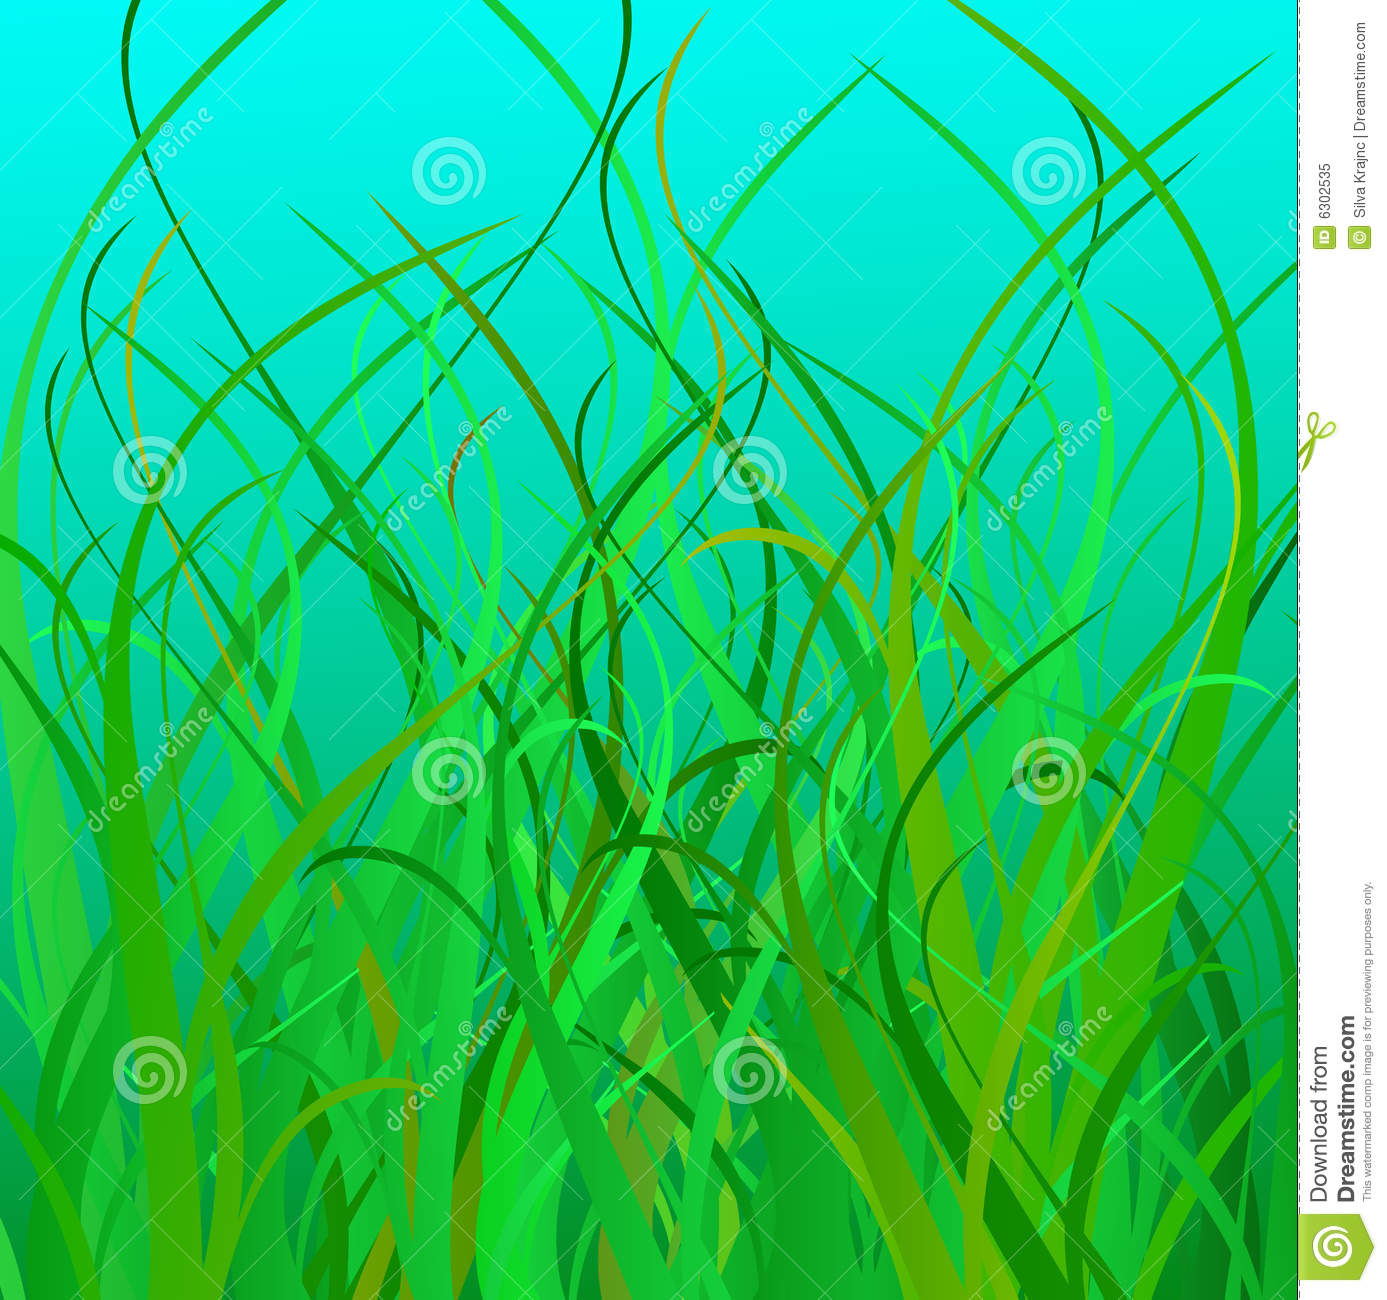 Sea Grass clipart #6, Download drawings